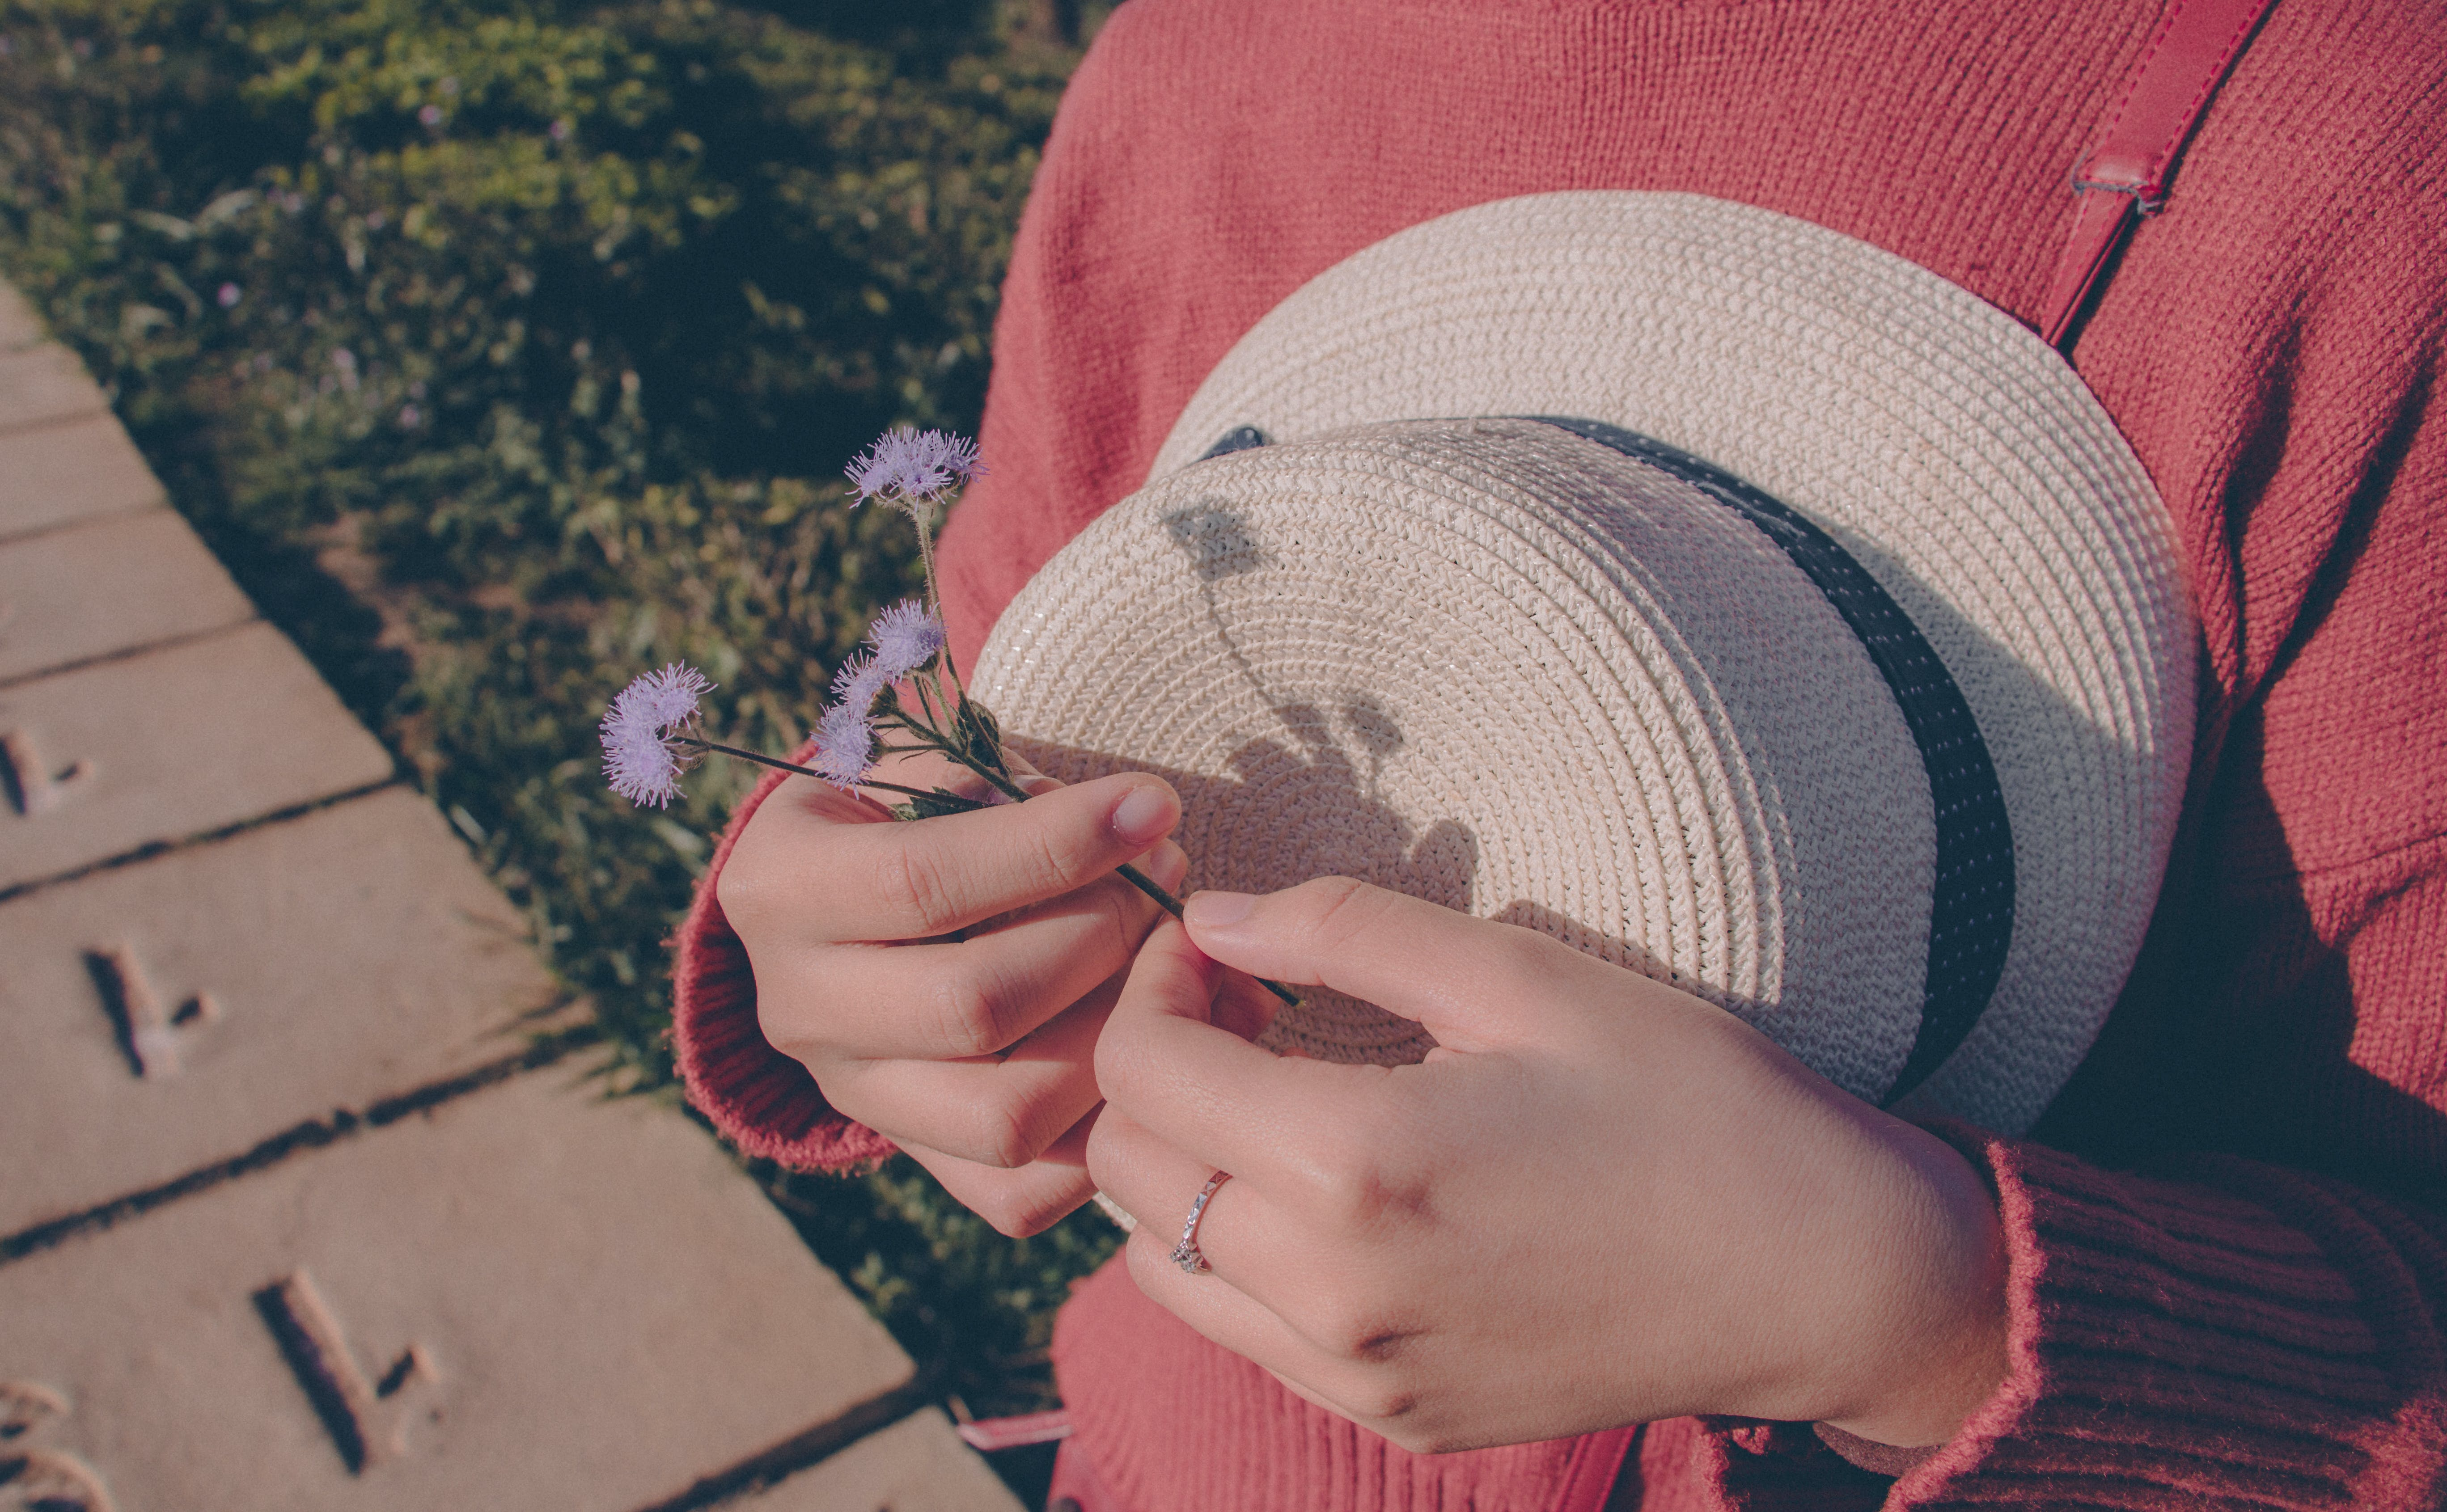 Person Wearing Sweater Holding Flower and Hat